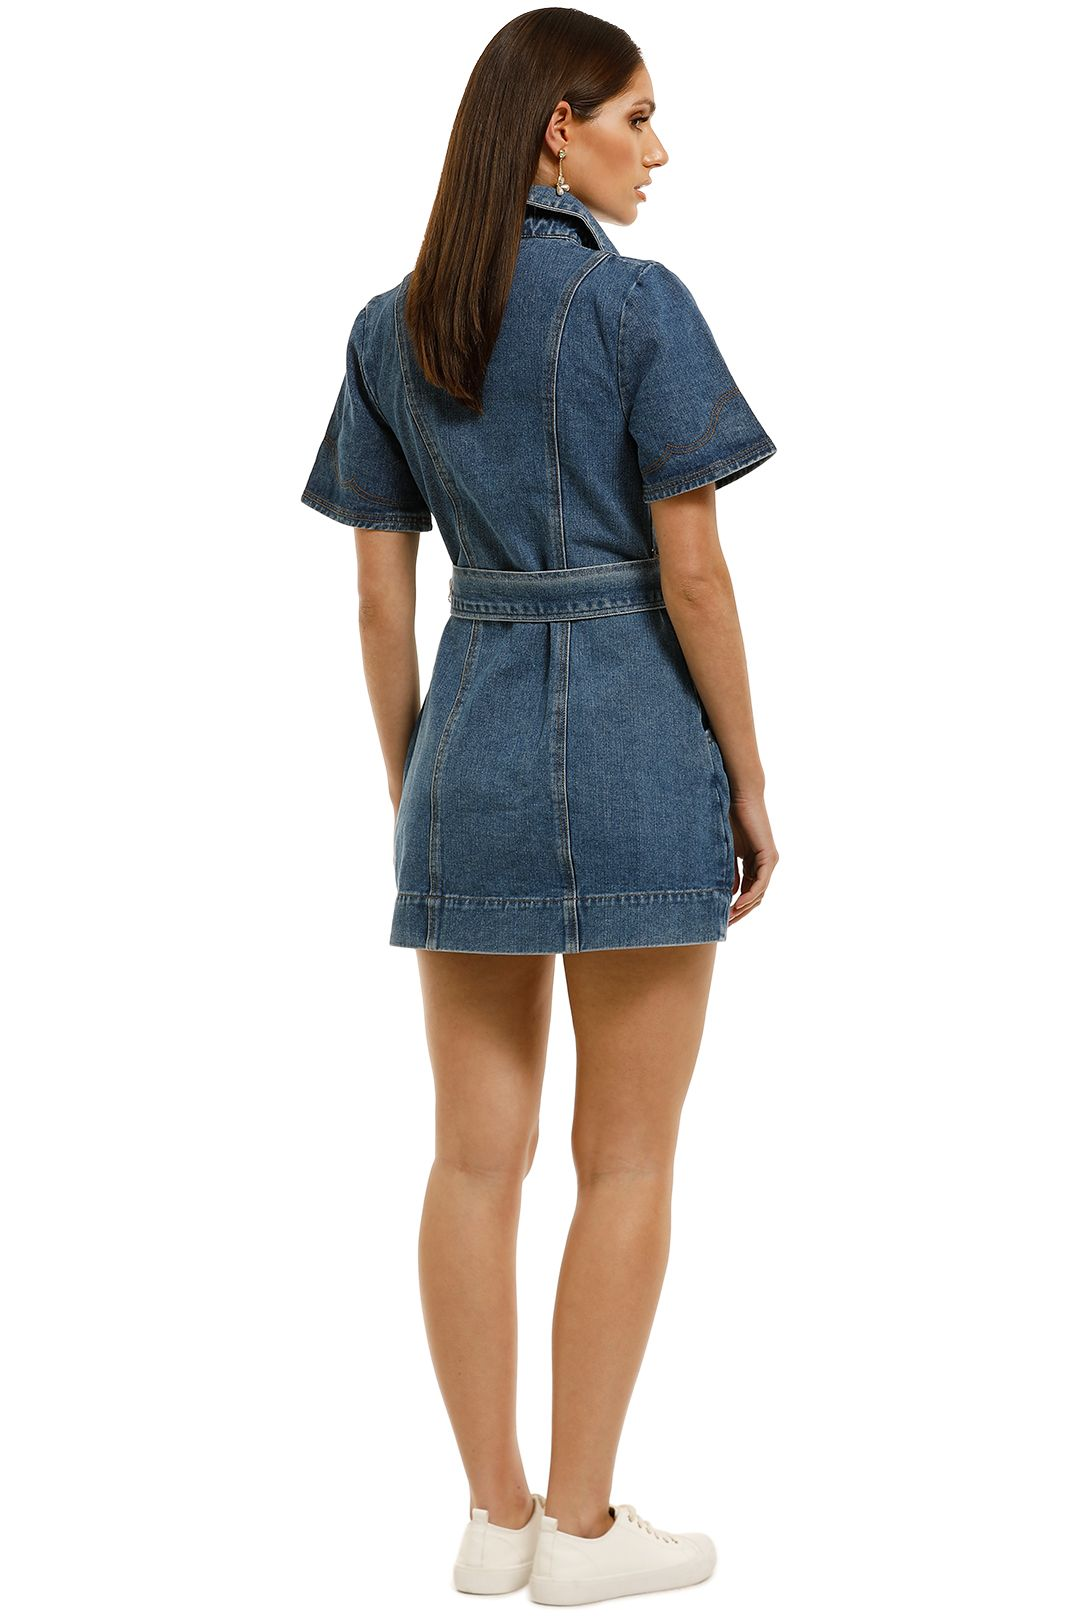 CMEO-Collective-Lifetime-Dress-Blue-Denim-Back